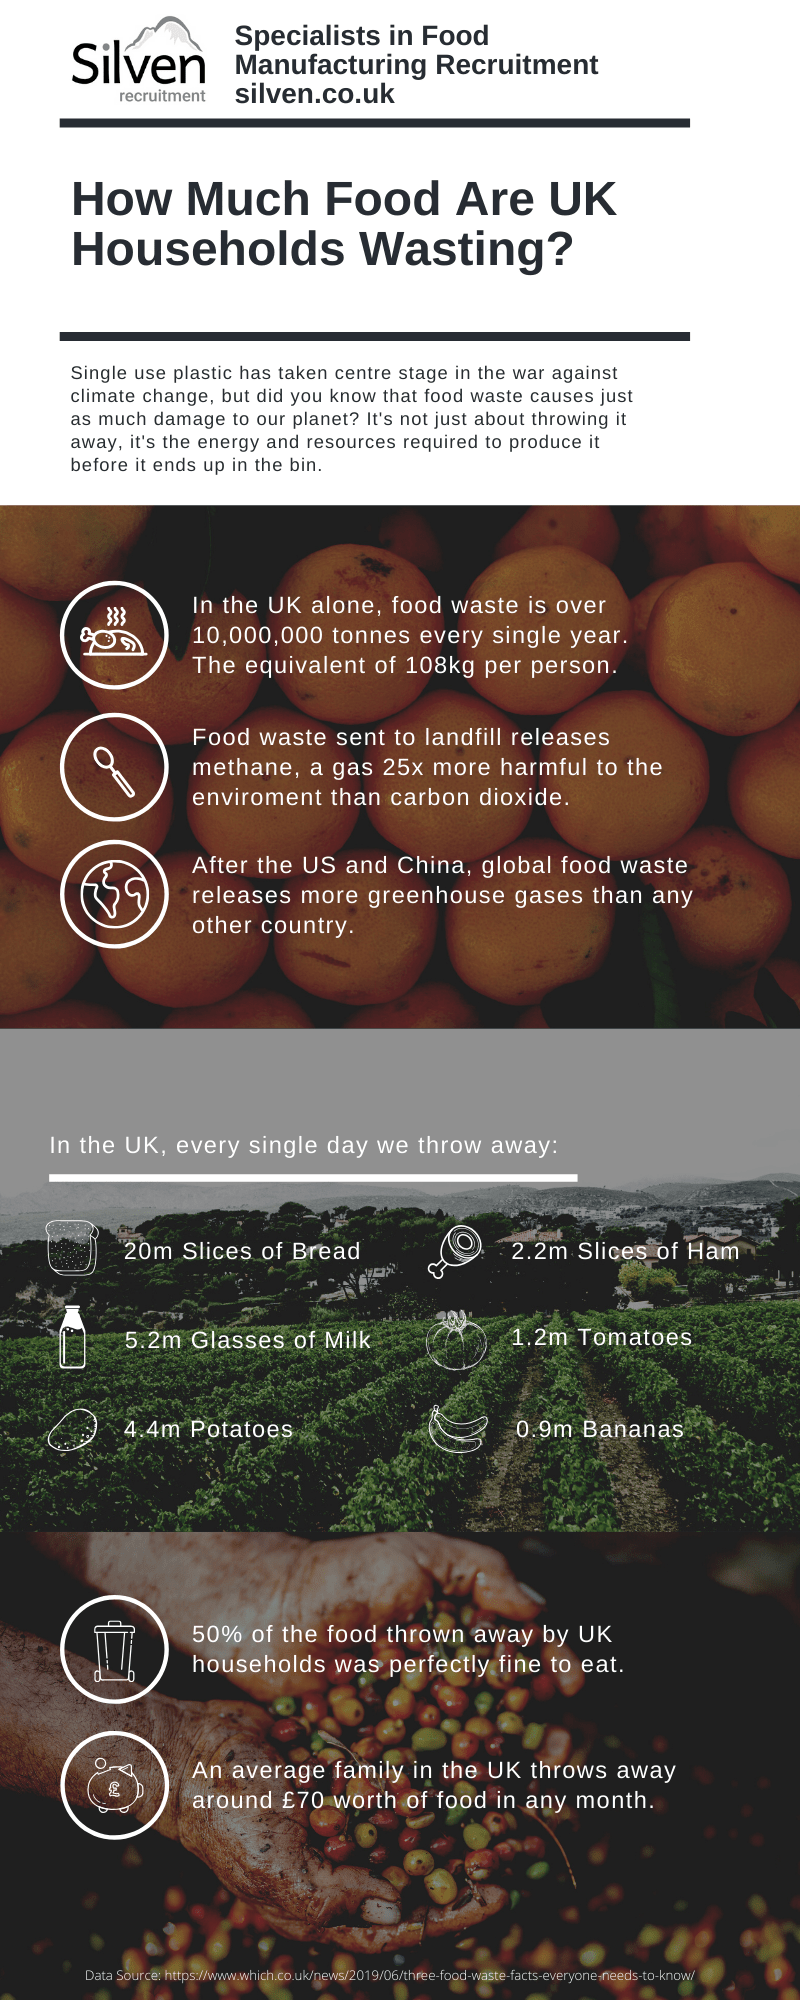 silven food waste infographic